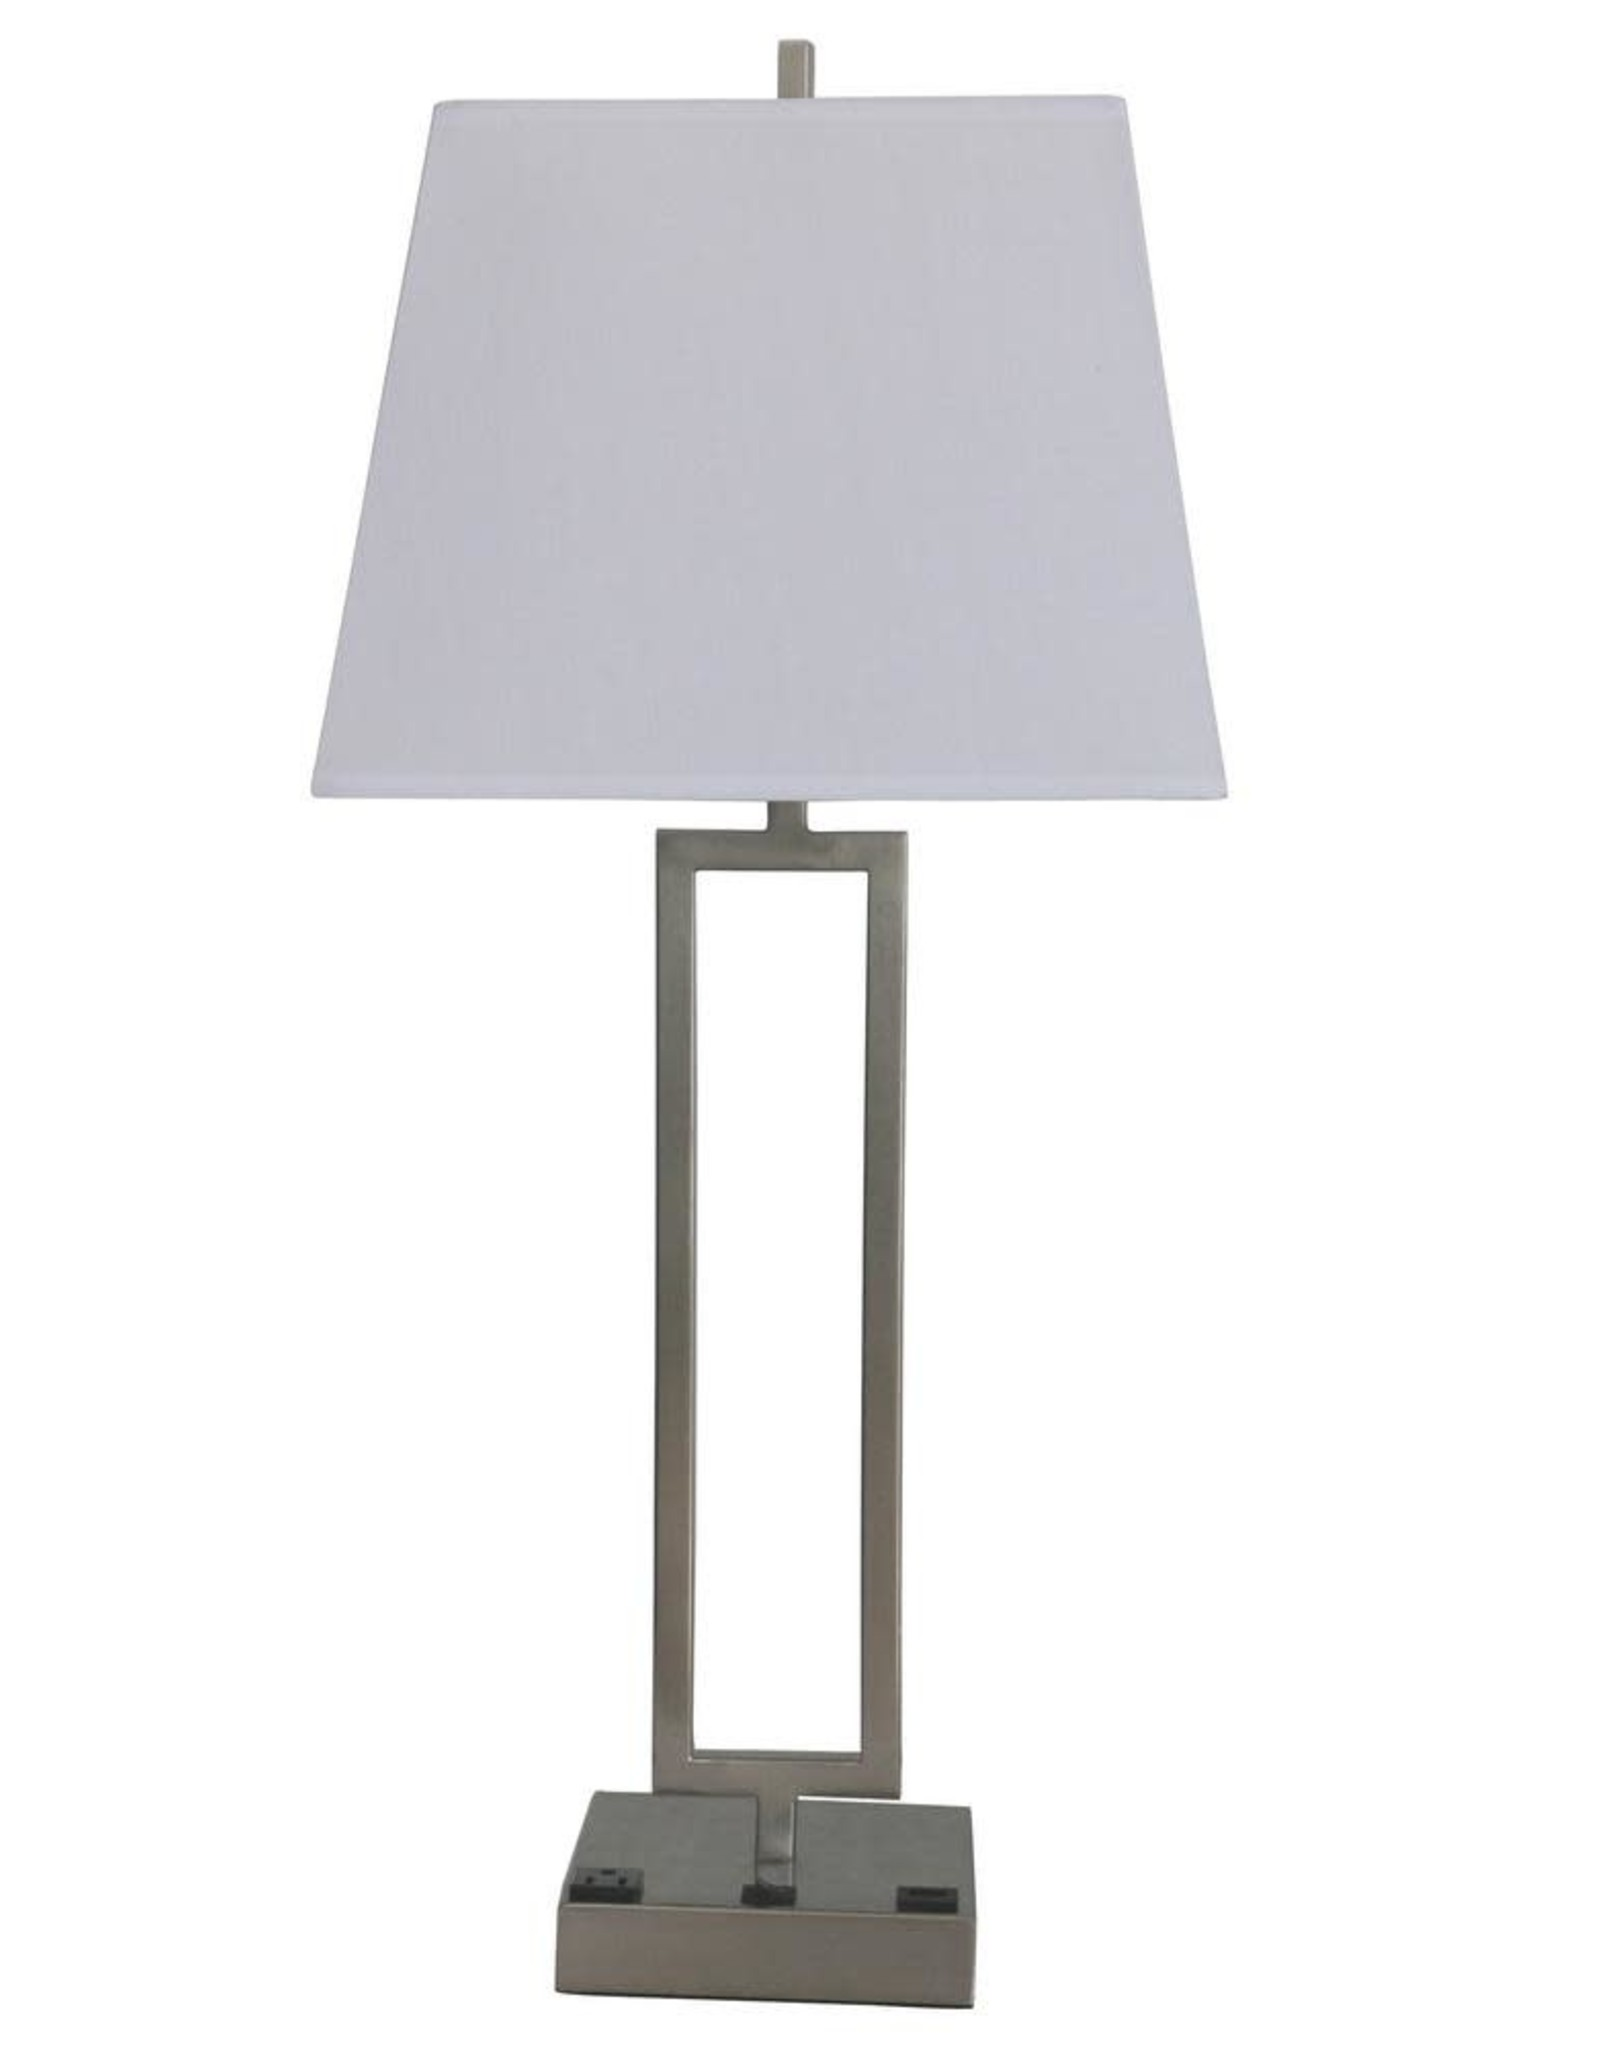 Fangio Lighting 25.5 in. Tech-Friendly Brushed Nickel Metal Table Lamp with 1-Outlet and 1 USB Base Port